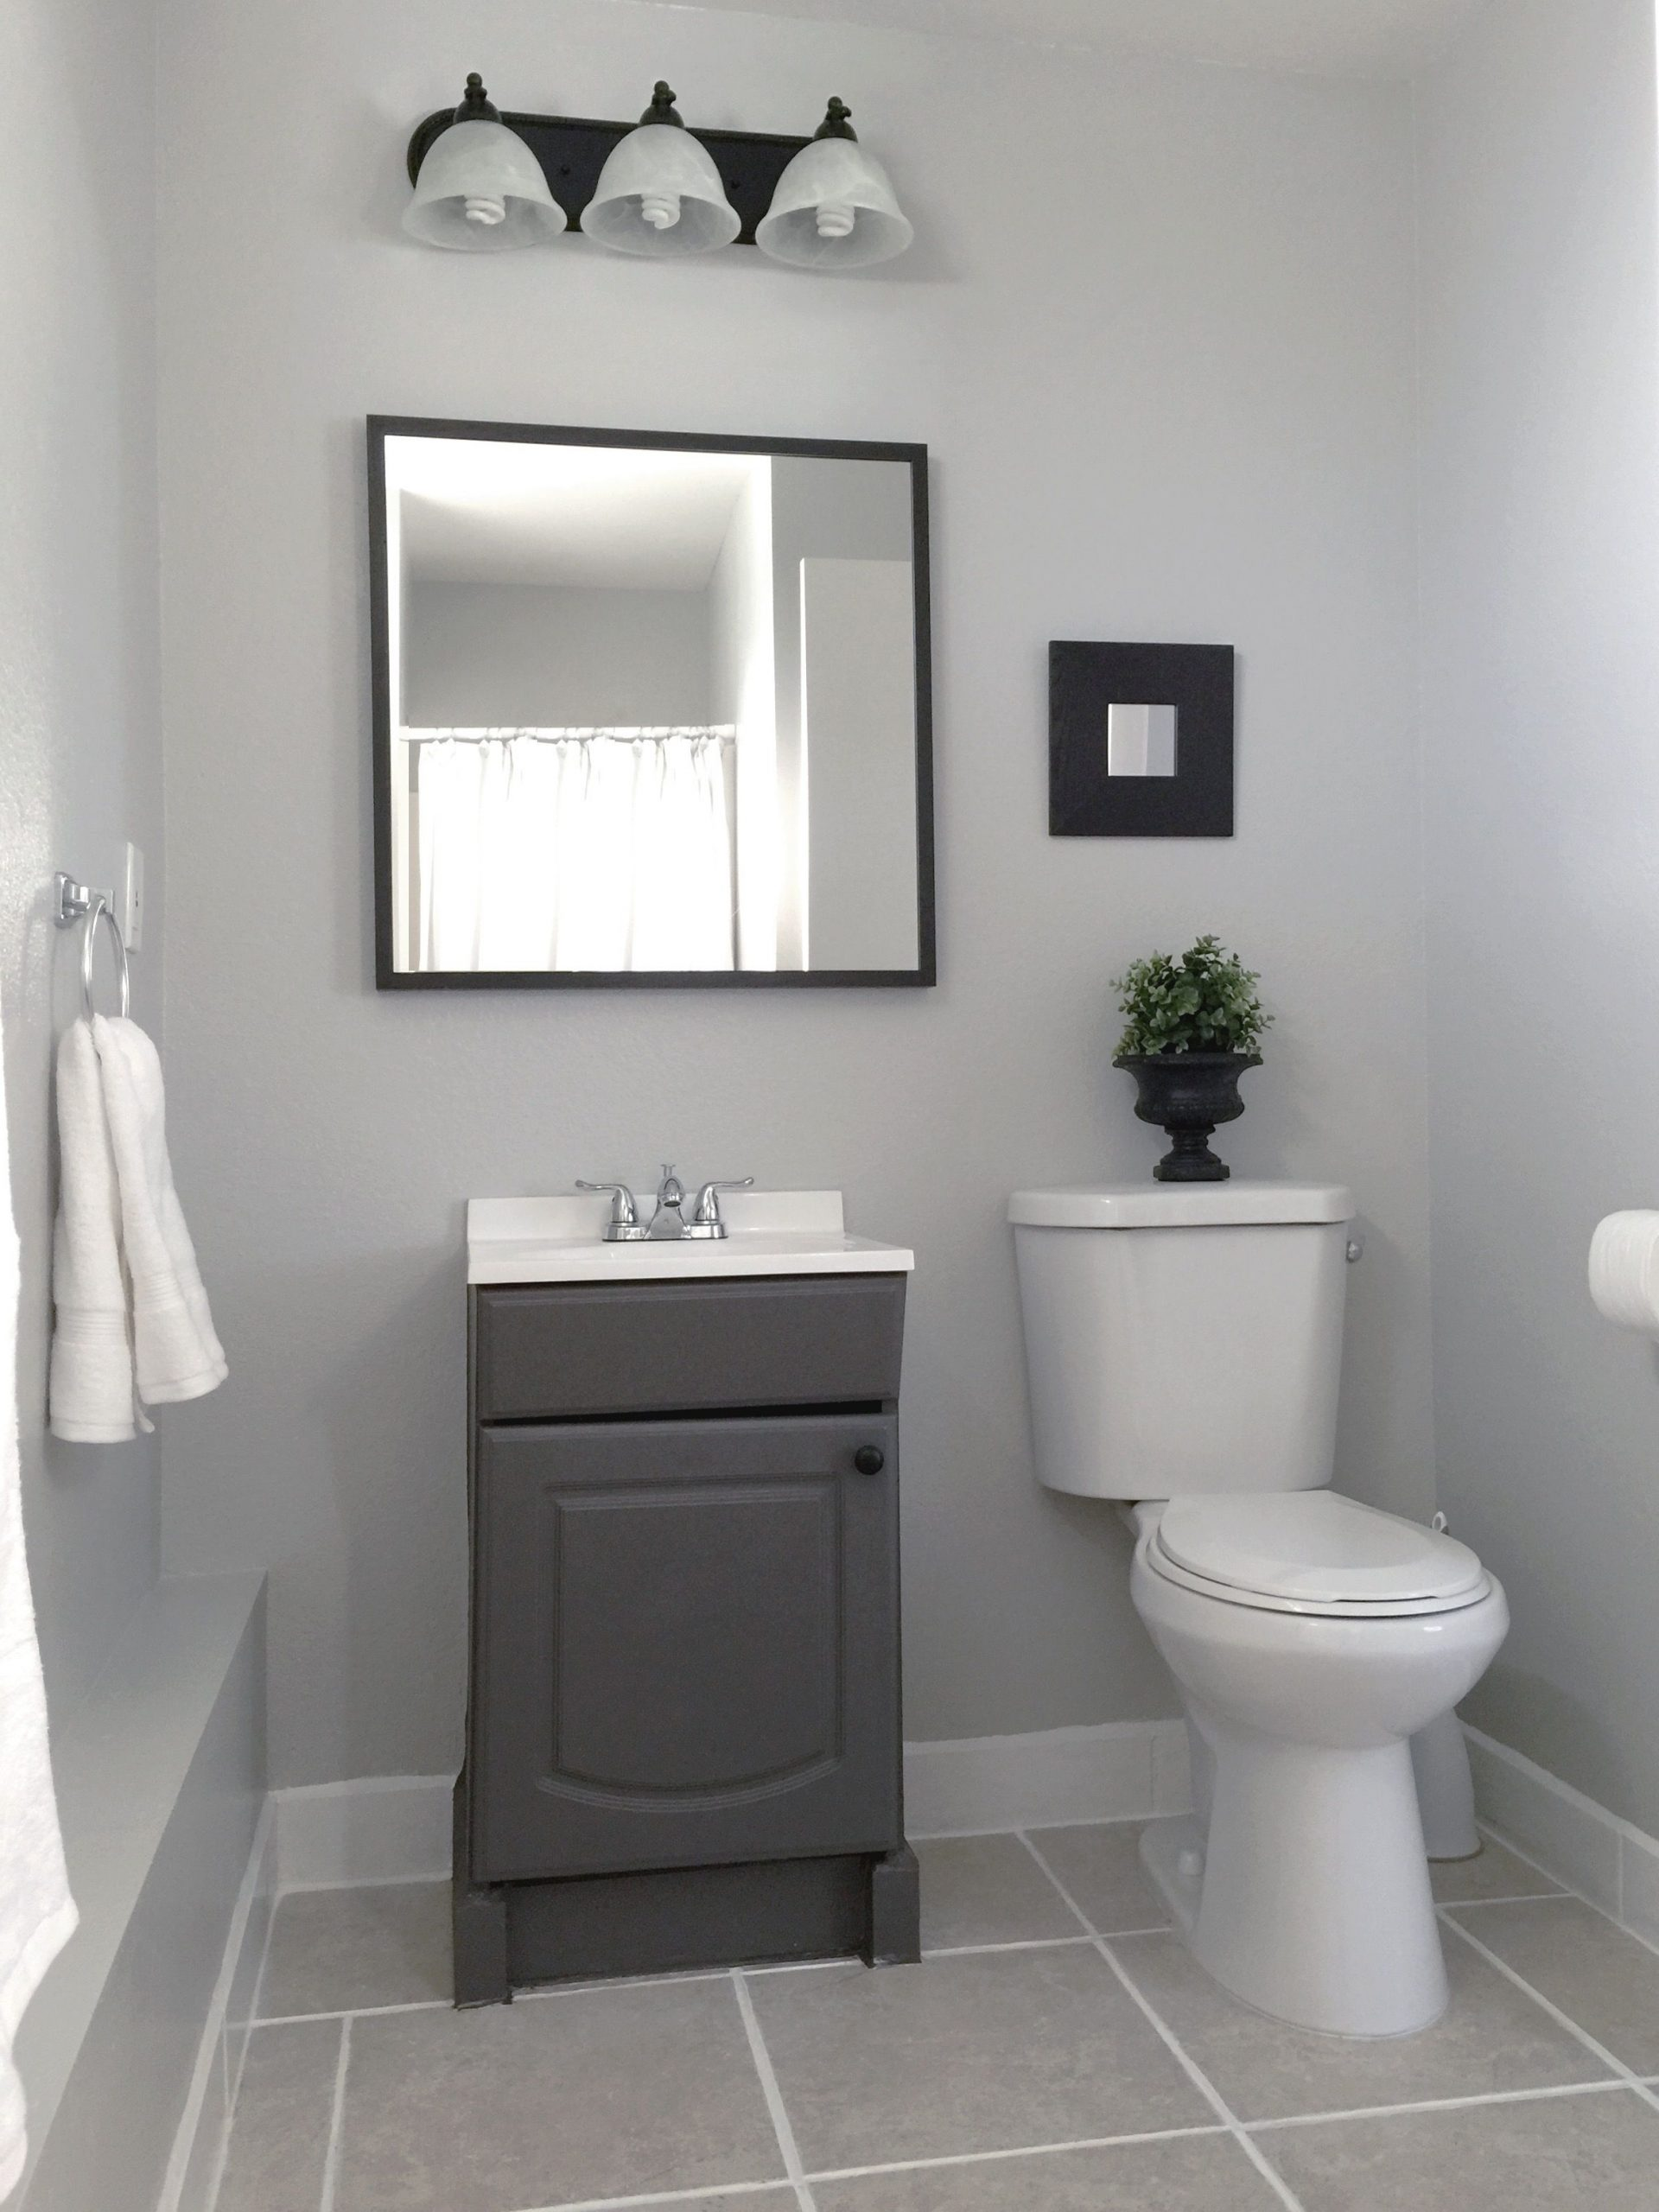 Small Garage Bathroom Painted : Vanity & Wall(Behr Bathroom Paint Color Behr